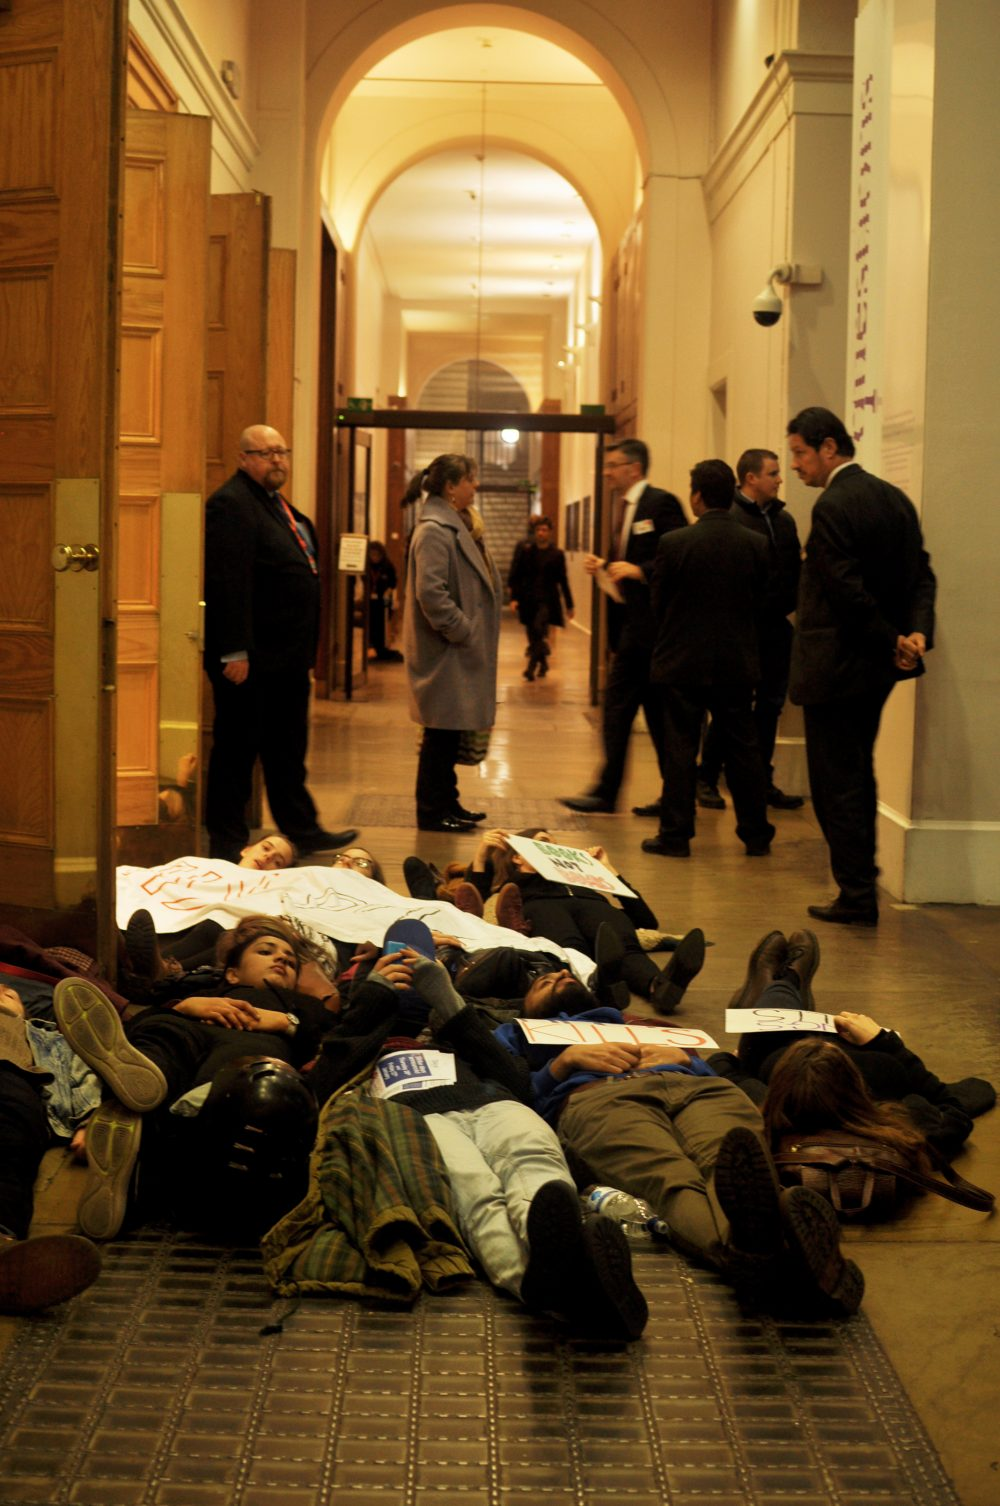 Demilitarise King's activists stage a die in in the hall way outside the Great Hall at King's College London